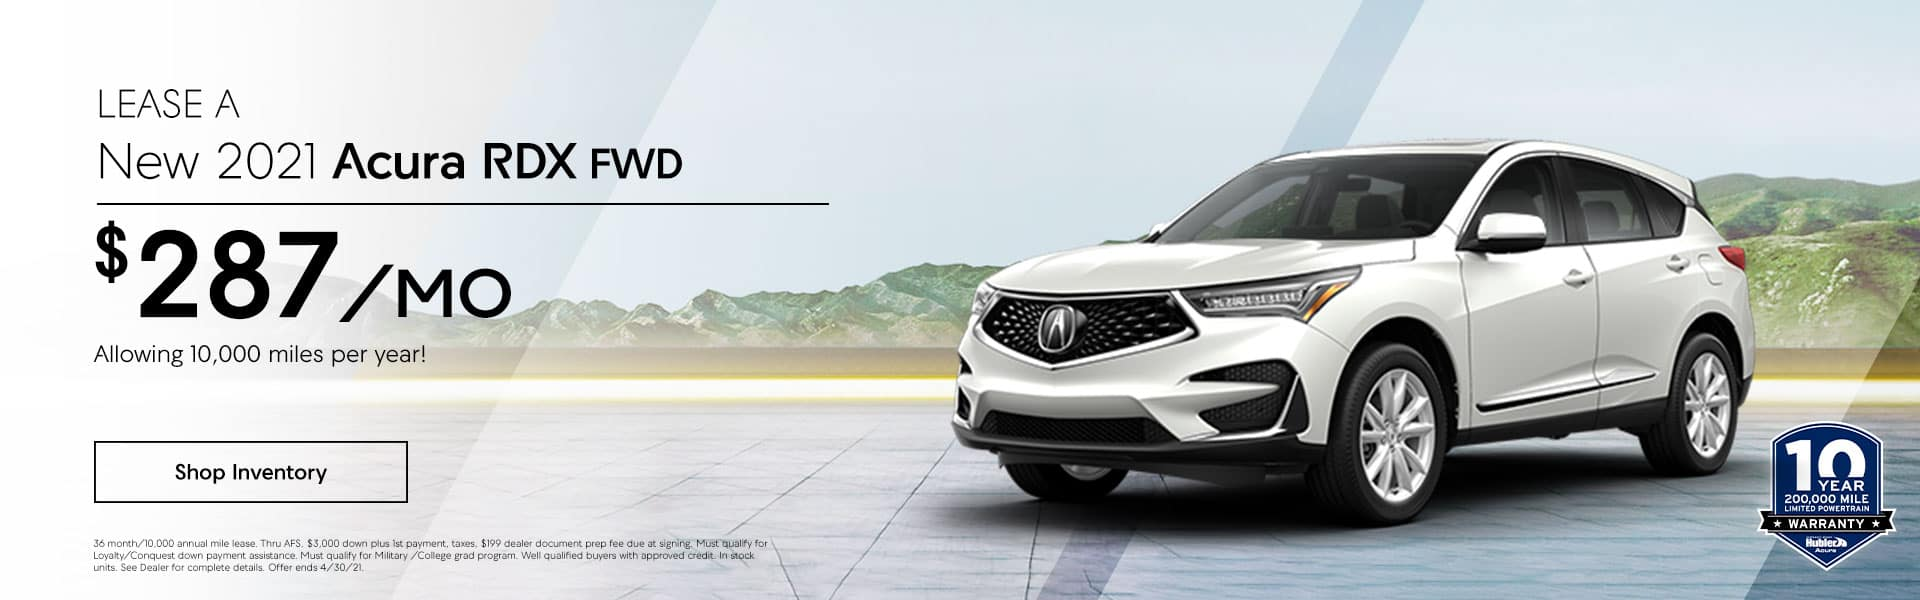 2021 Acura RDX FWD just $ 287.00 per month, Allowing 10,000 miles per year!